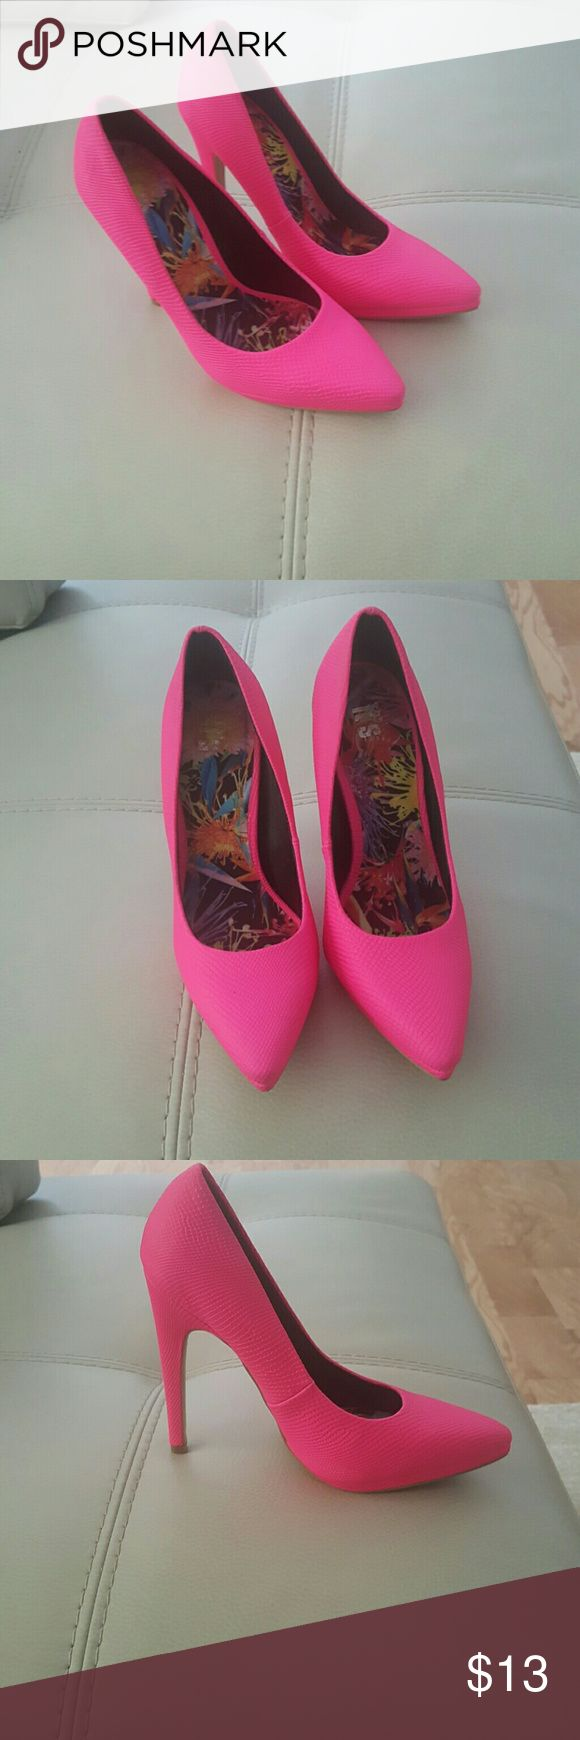 It's Fashion Pink Women's Platform Heel A perfect pop of vibrant color for any outfit!!  Heel Height= 5 inch Platform= 1inch its Fashion Shoes Platforms